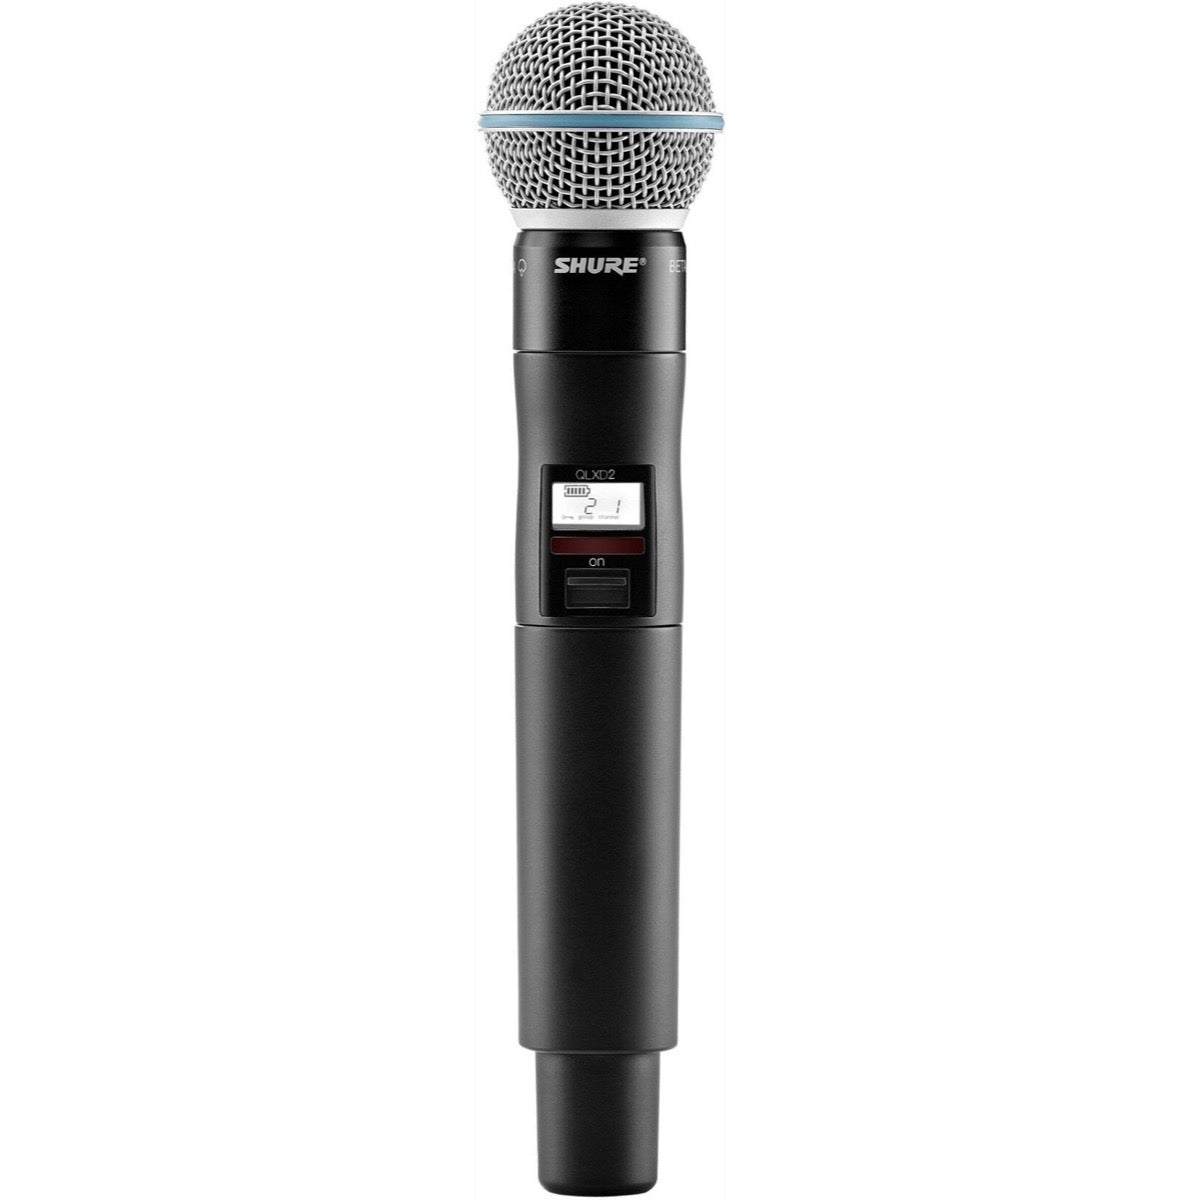 Shure QLXD24B58 Wireless System with Beta 58A Handheld Microphone Transmitter, Band V50 (174 - 216 MHz)